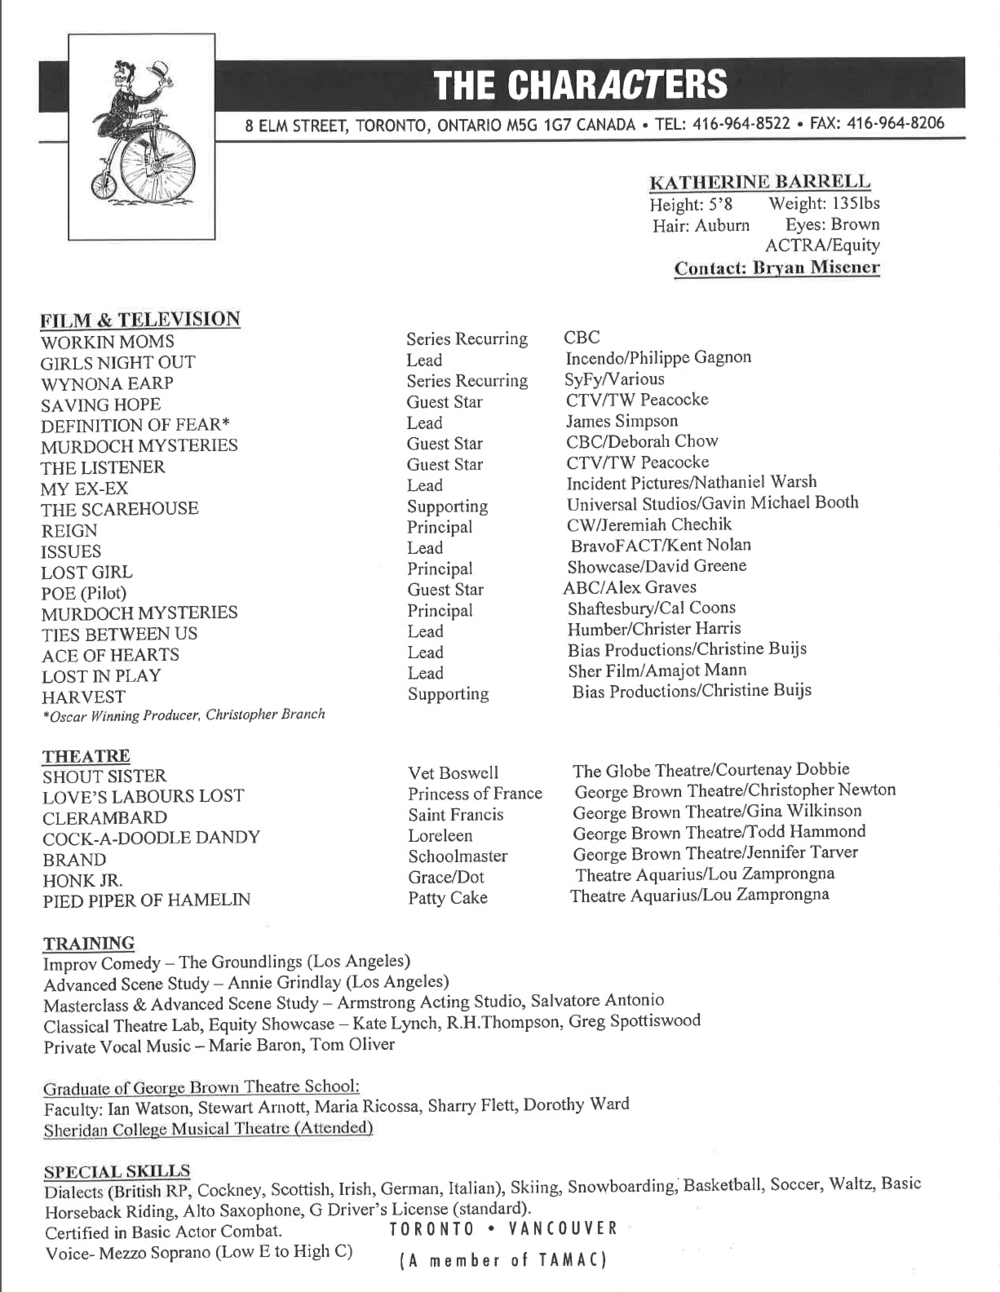 Katherine Barrell - Resume Aug 2015.jpg